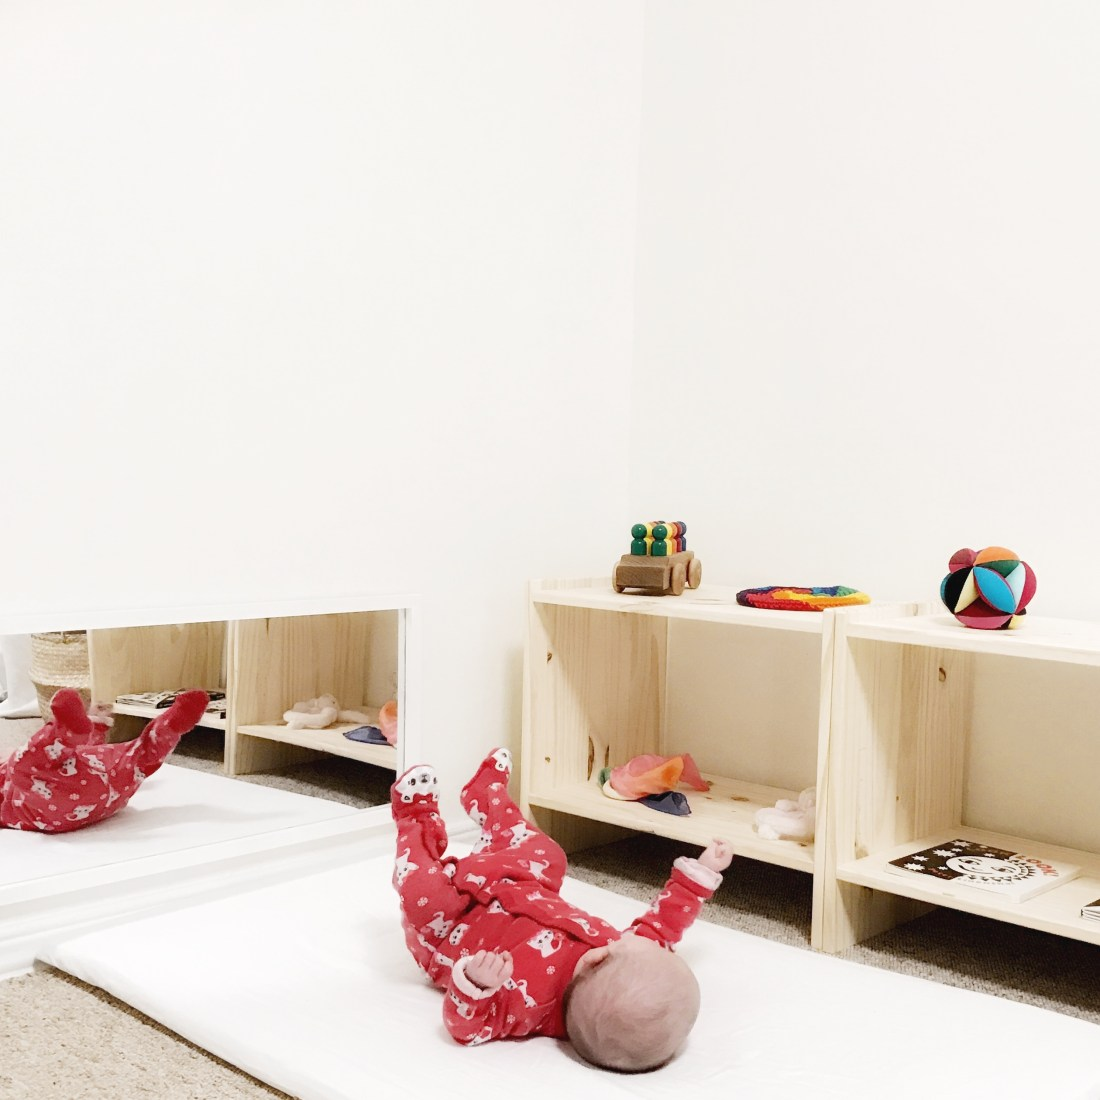 montessori-infant-play-space-at-home